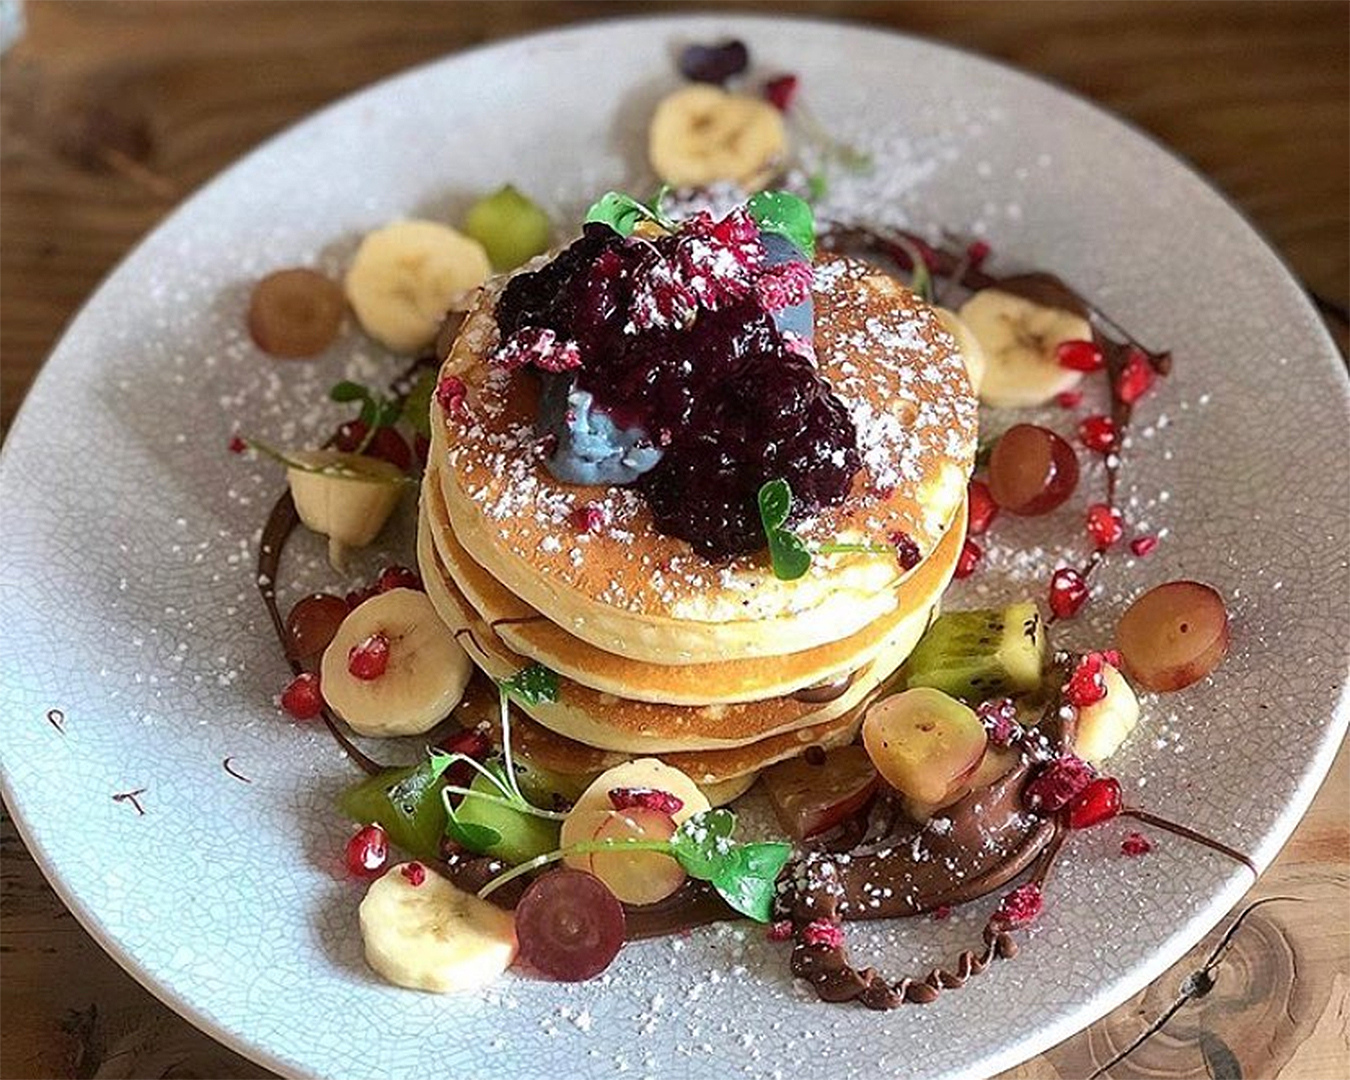 Delicious pancakes available at Dear Jervois.